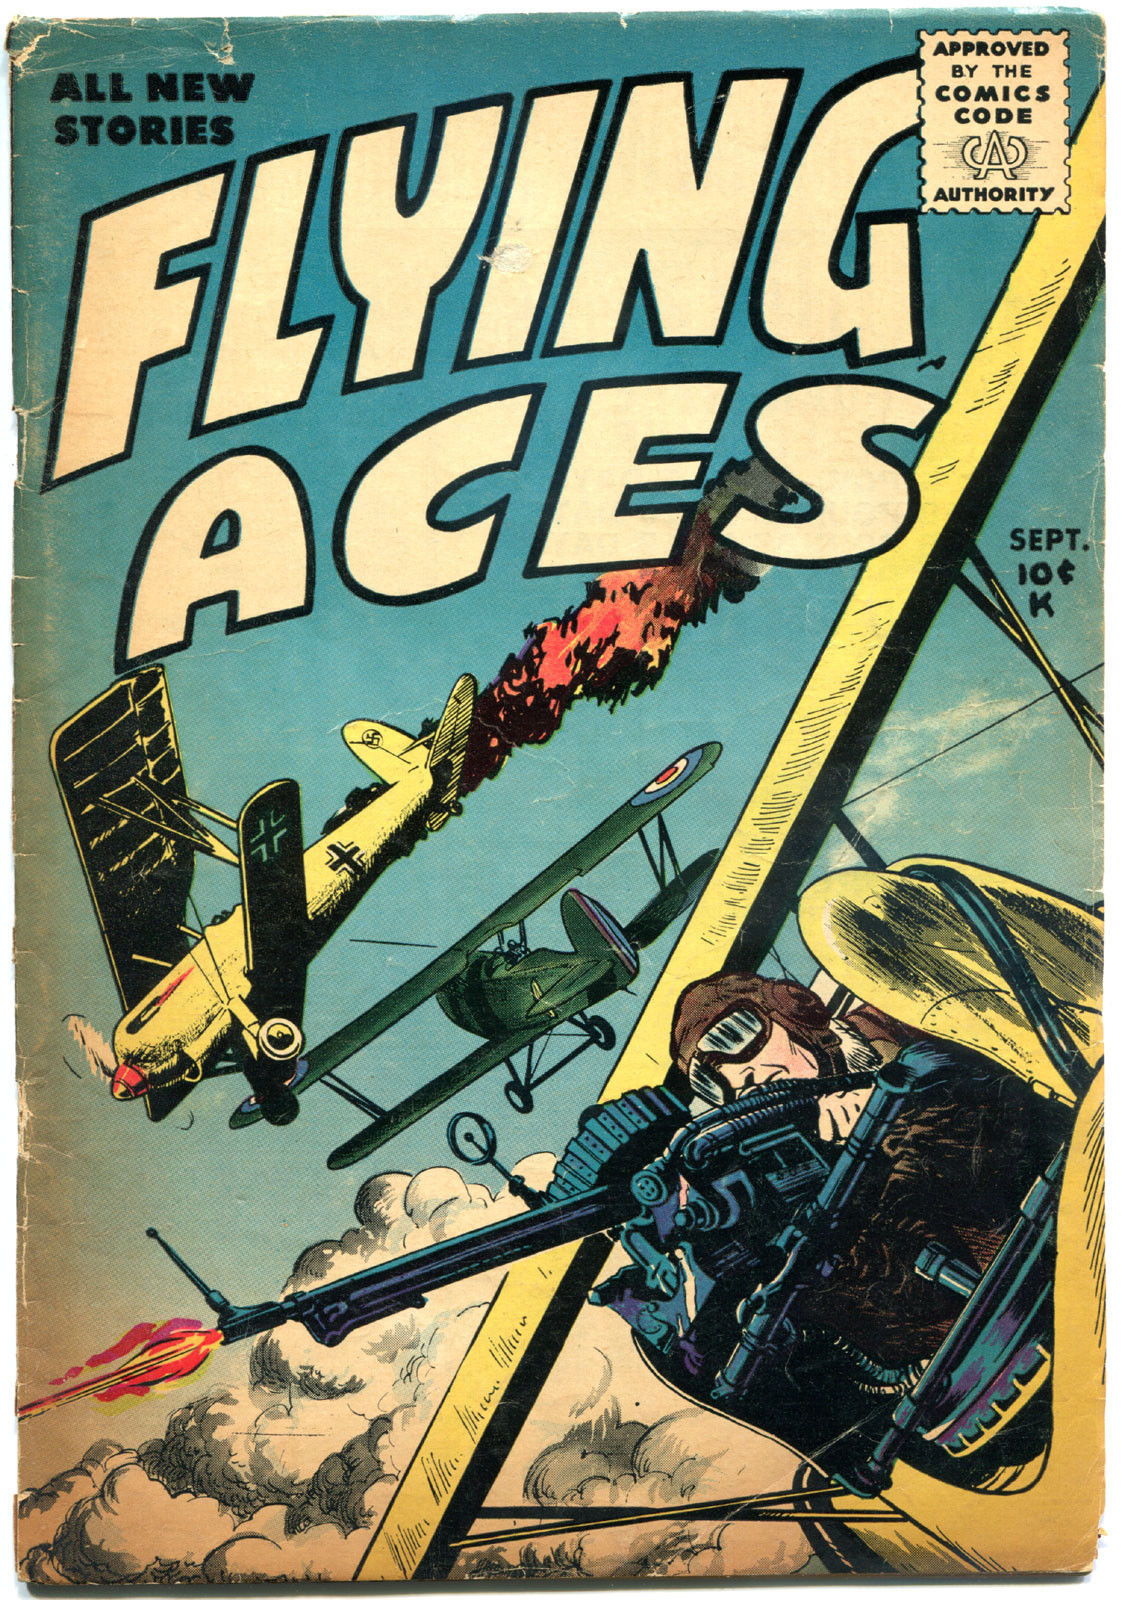 FLYING ACES #2, VG-, 1955, Golden Age, Key, more GA and War in store